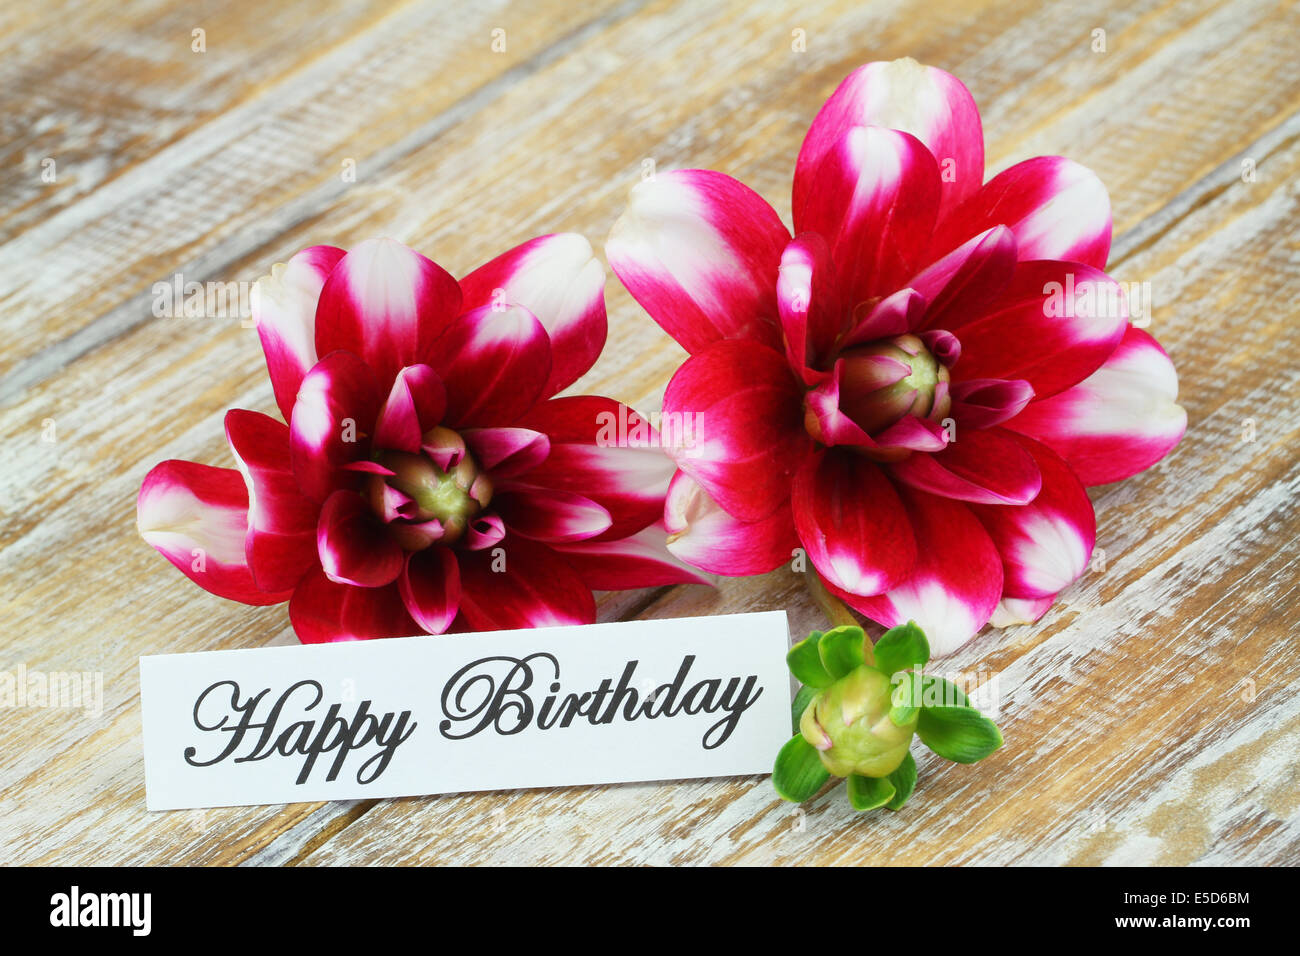 Free Images Of Birthday Flowers Excellent Birthday Flower Bouquet